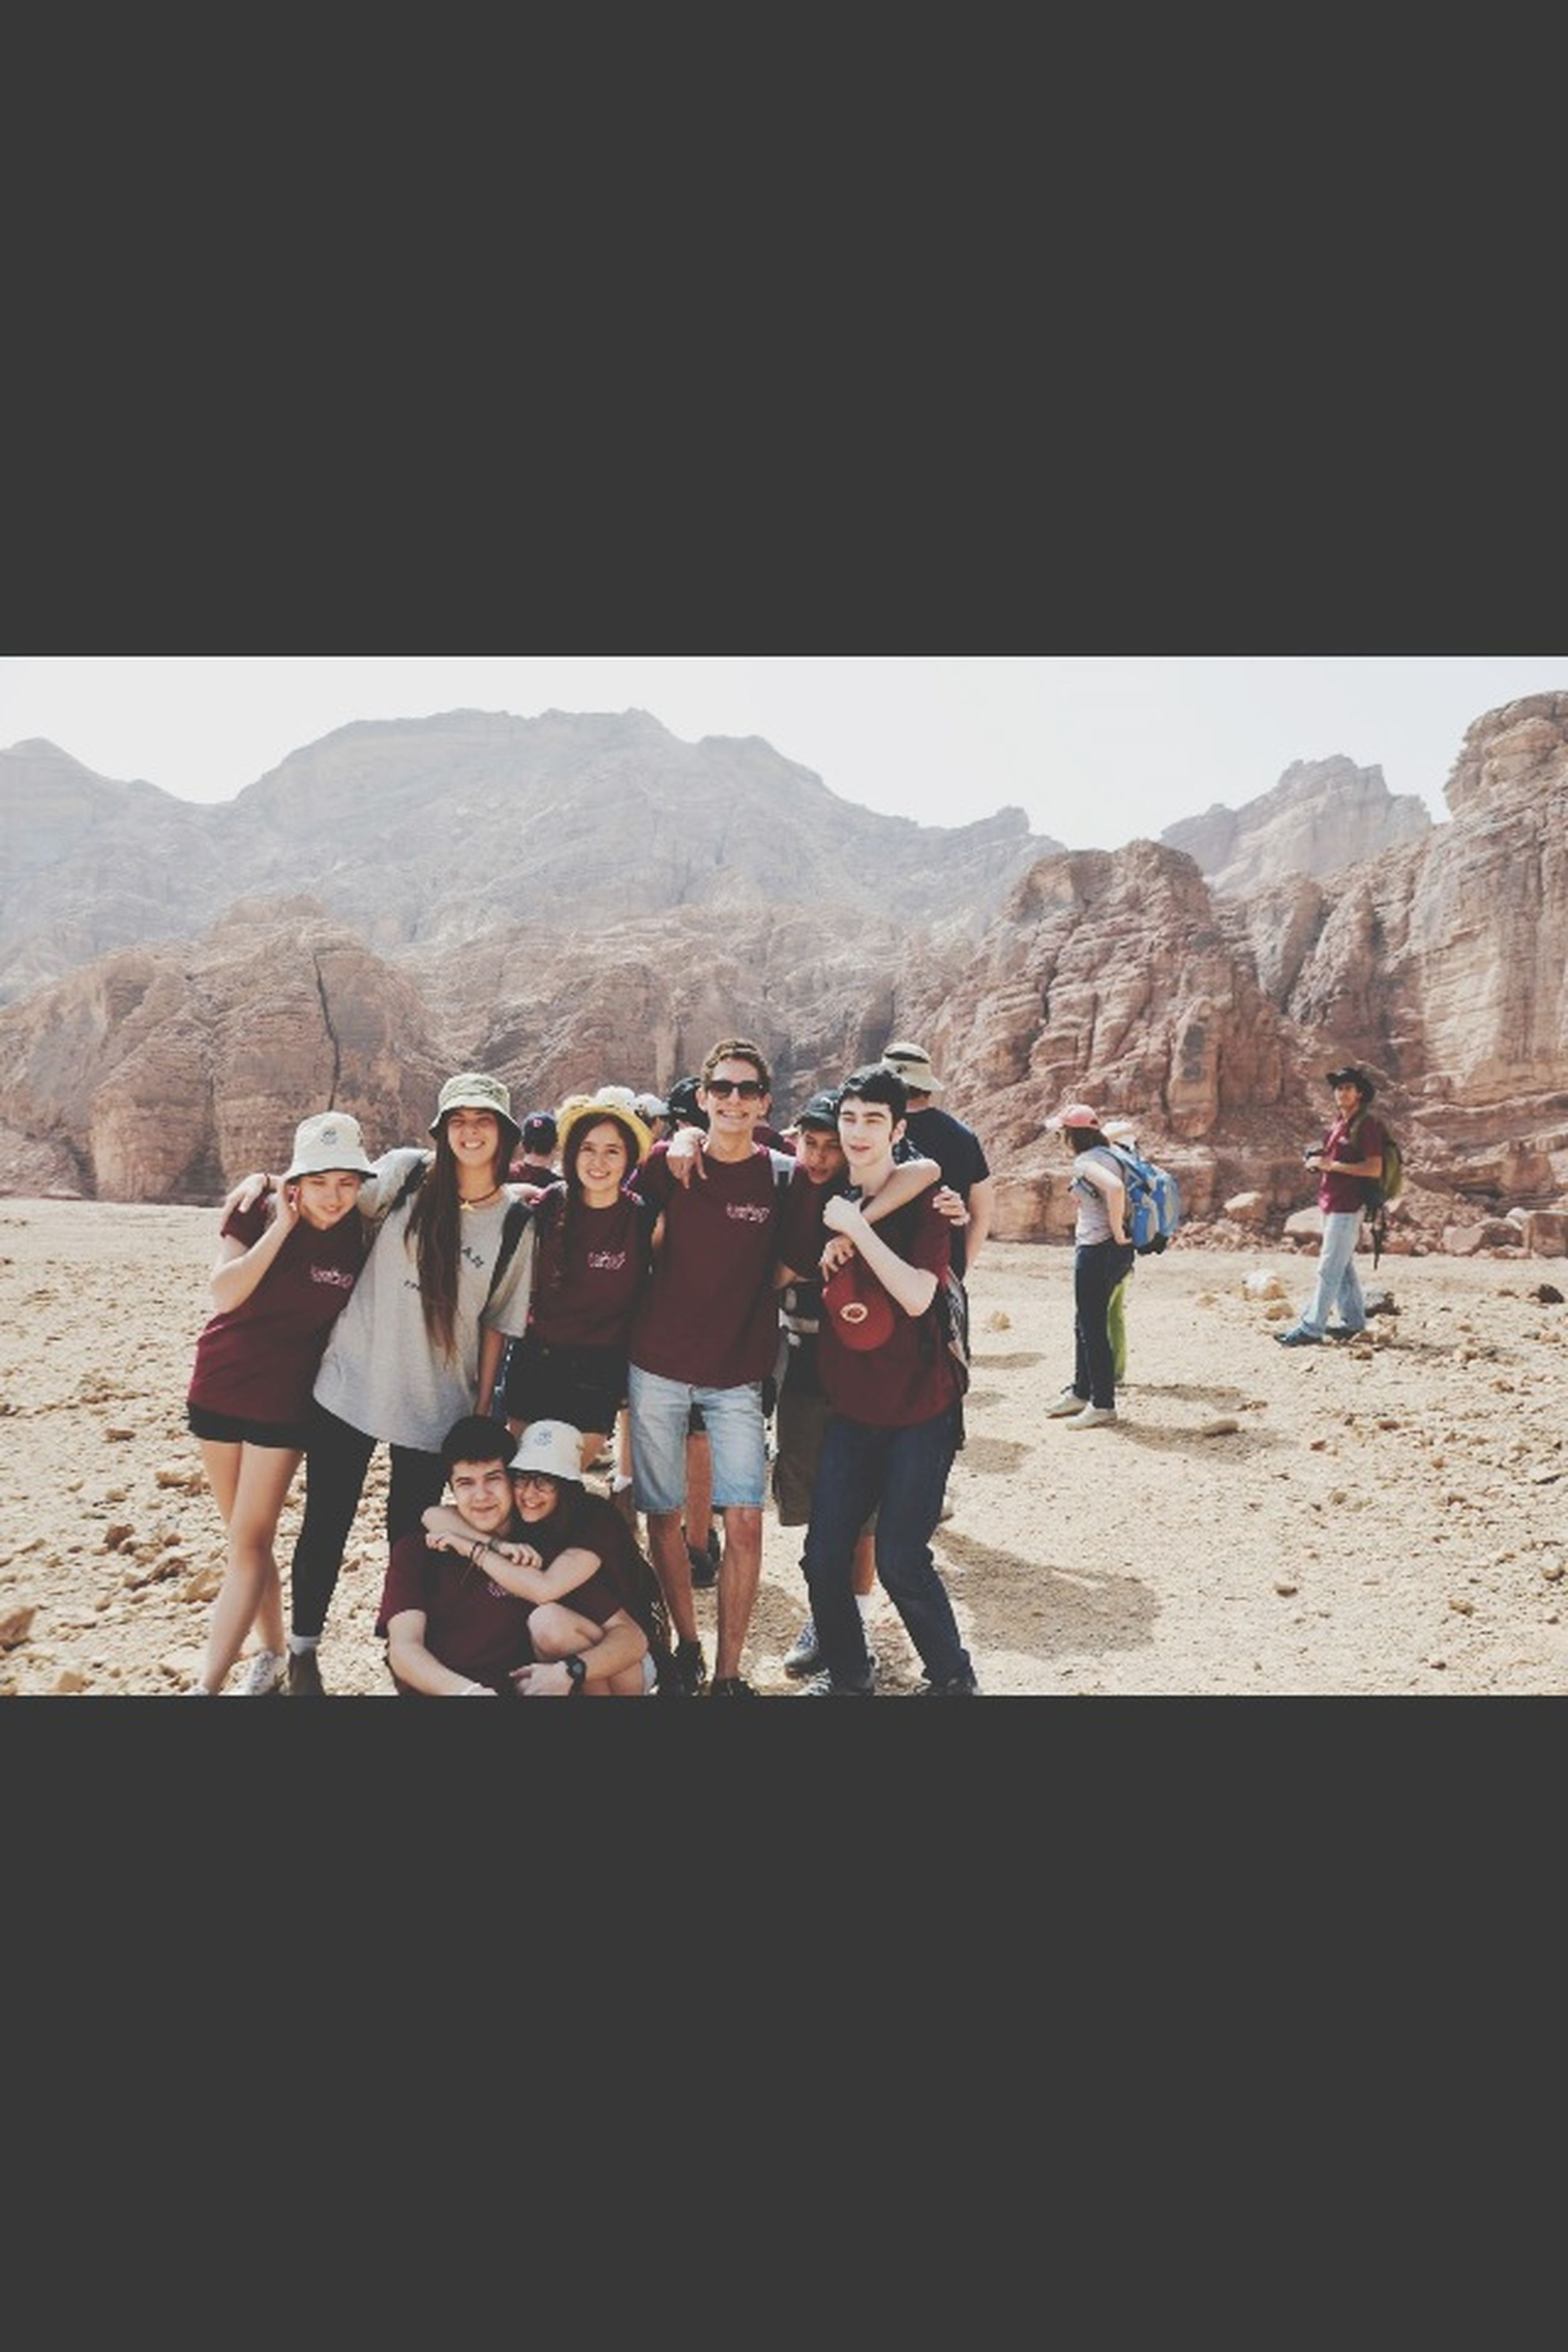 lifestyles, men, clear sky, person, leisure activity, mountain, large group of people, copy space, togetherness, full length, tourist, standing, landscape, rear view, tourism, vacations, travel, walking, casual clothing